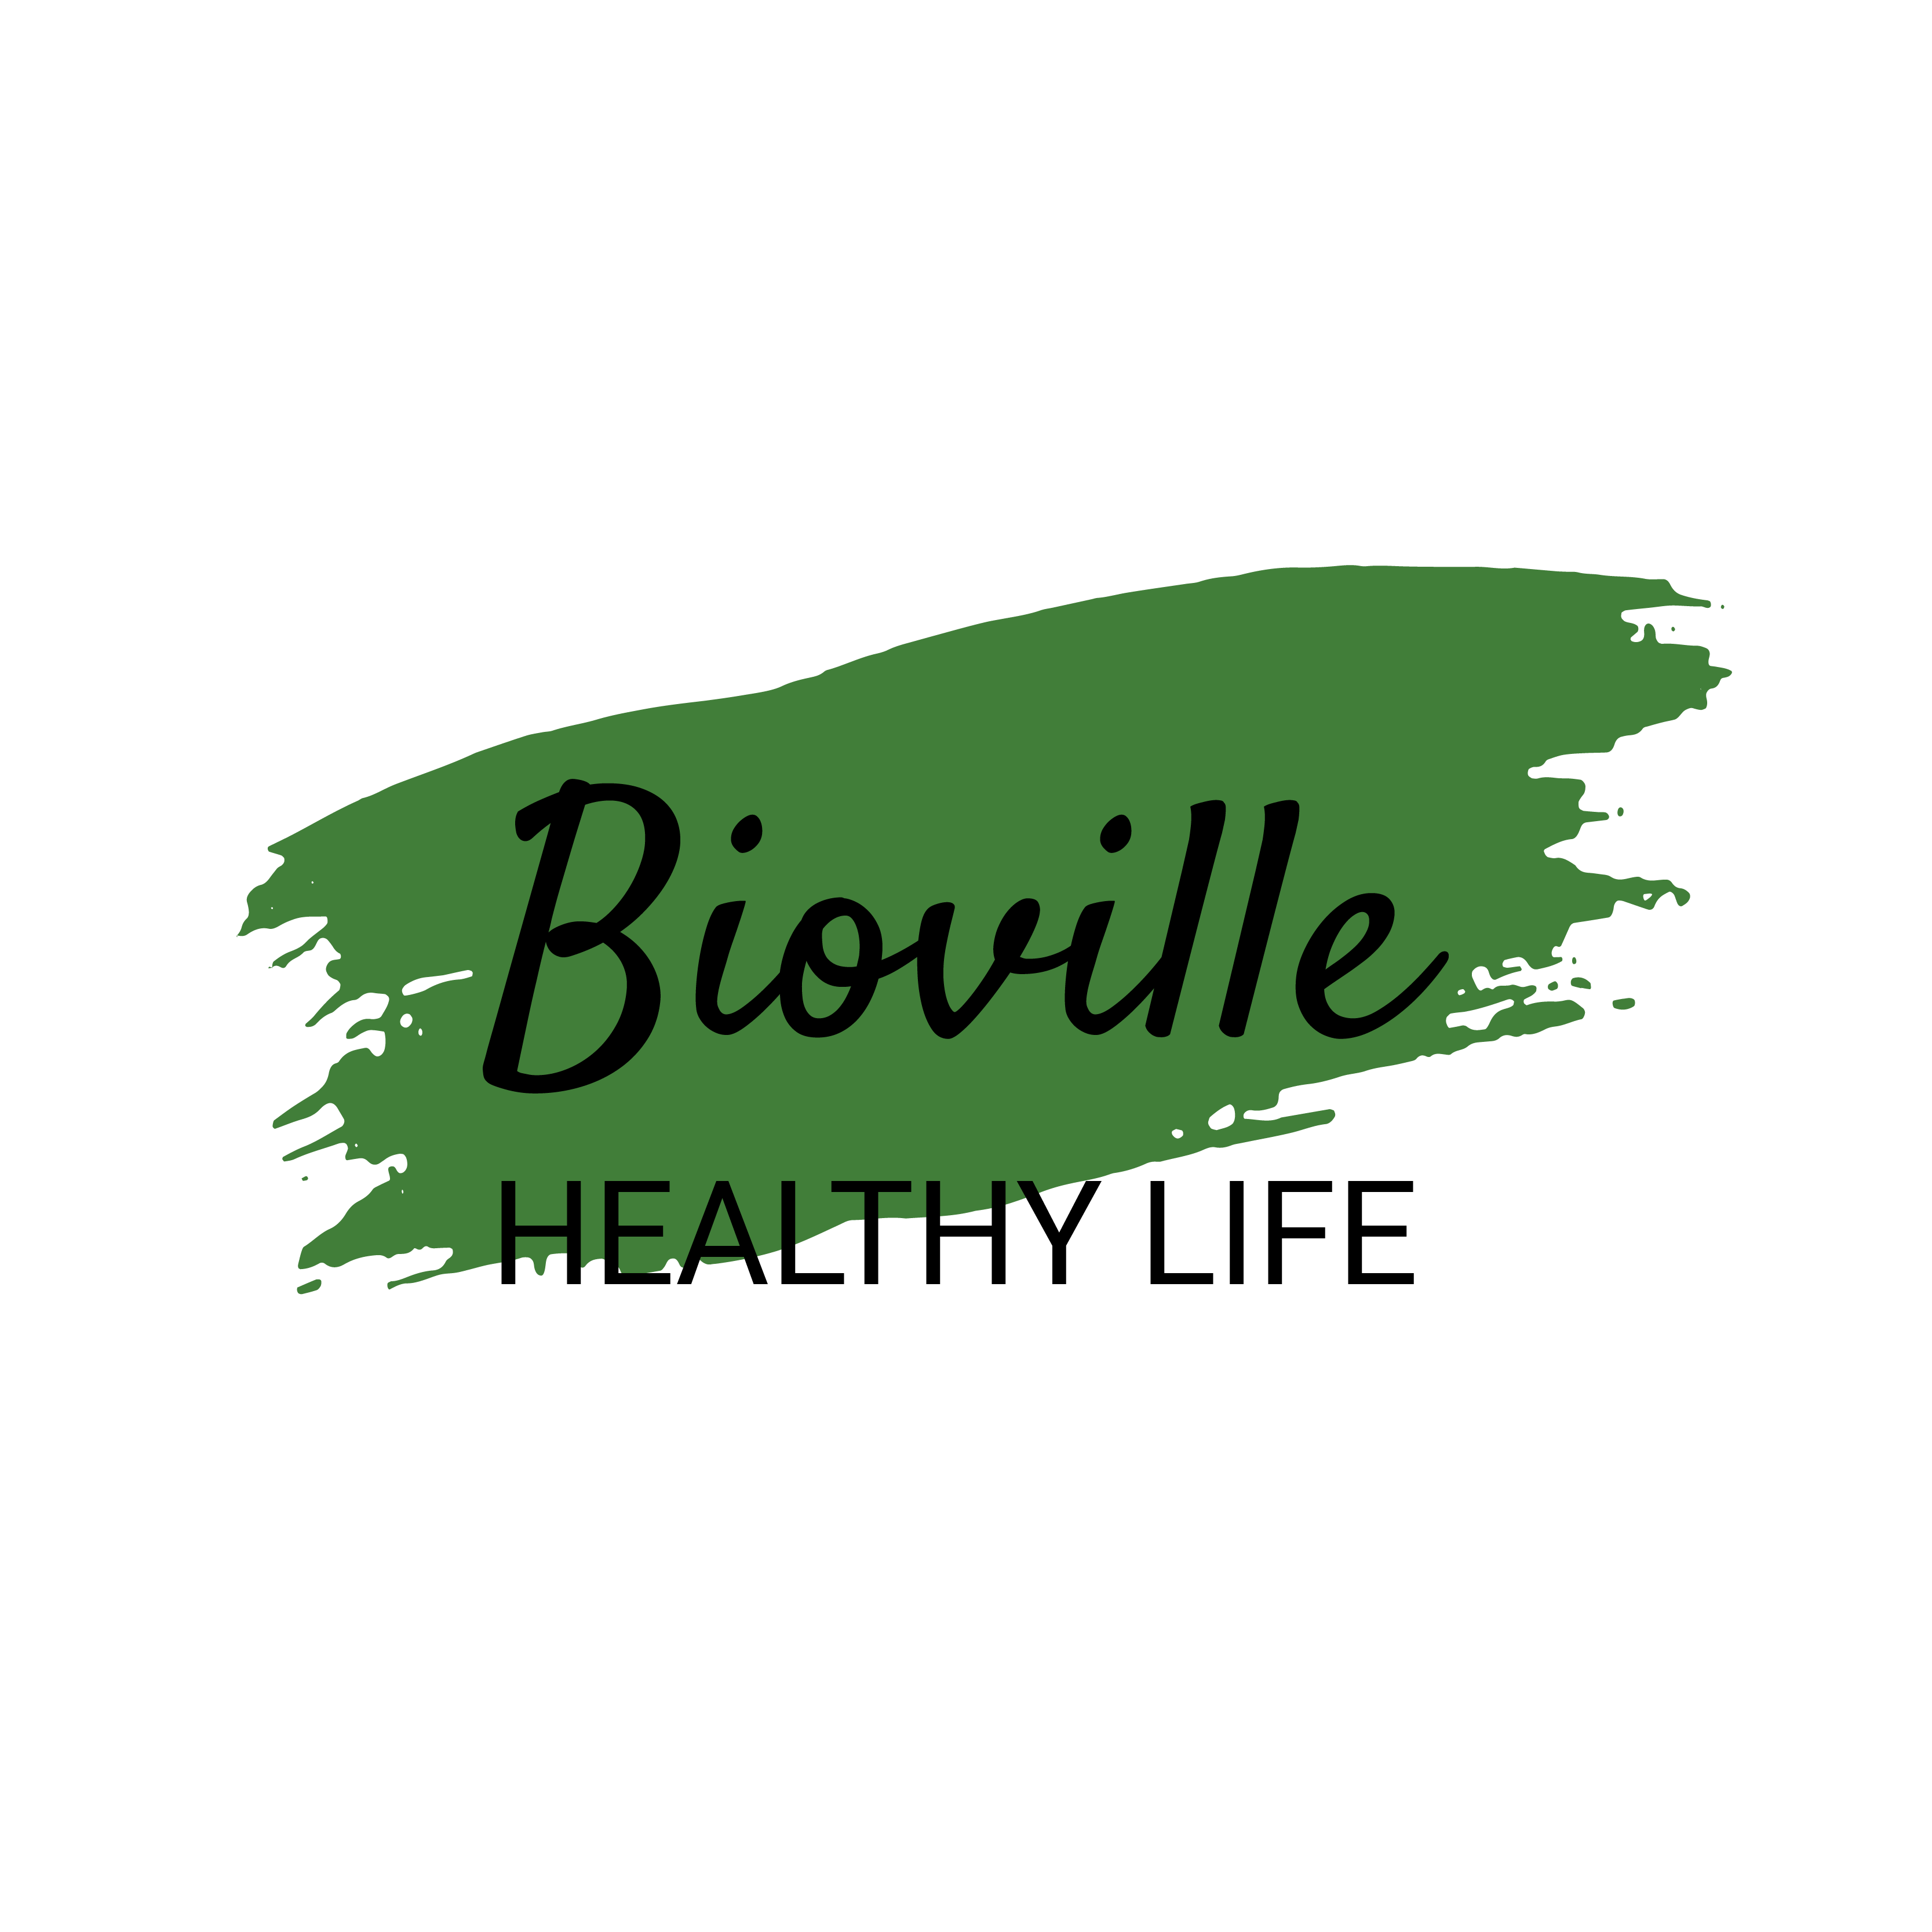 Bioville logo with the slogan